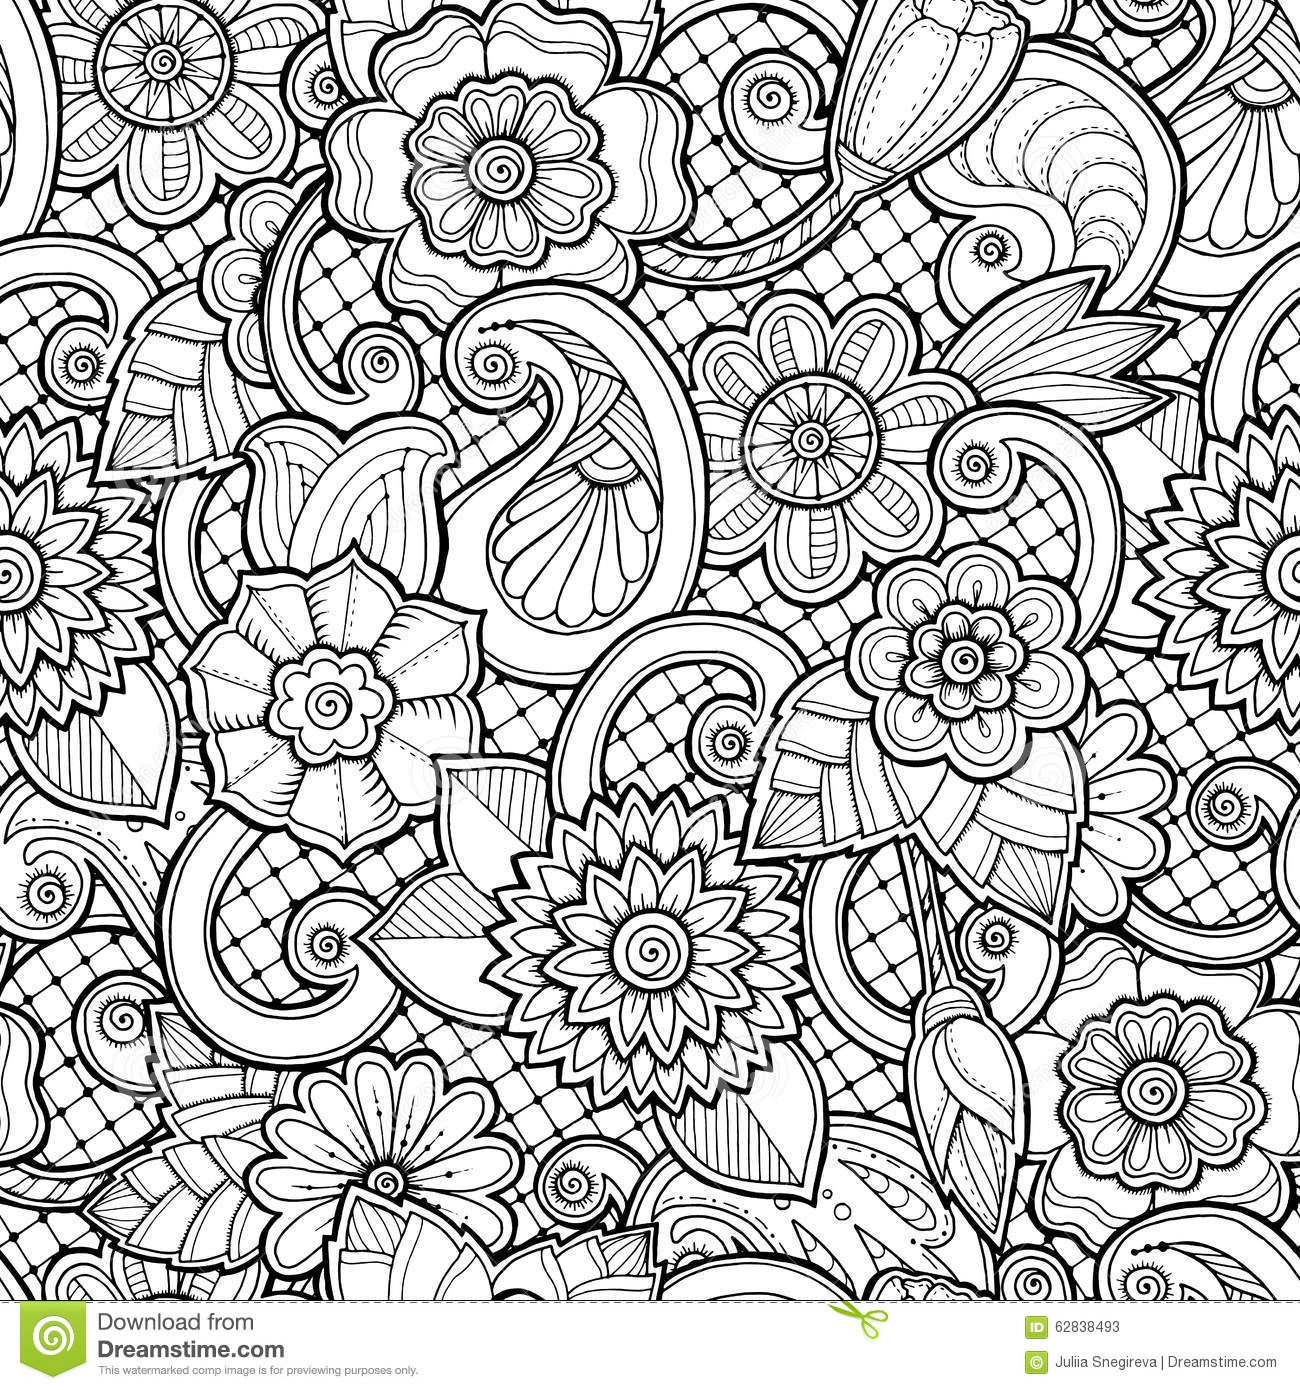 The wallpaper coloring book - Coloring Book Wallpaper Paisley